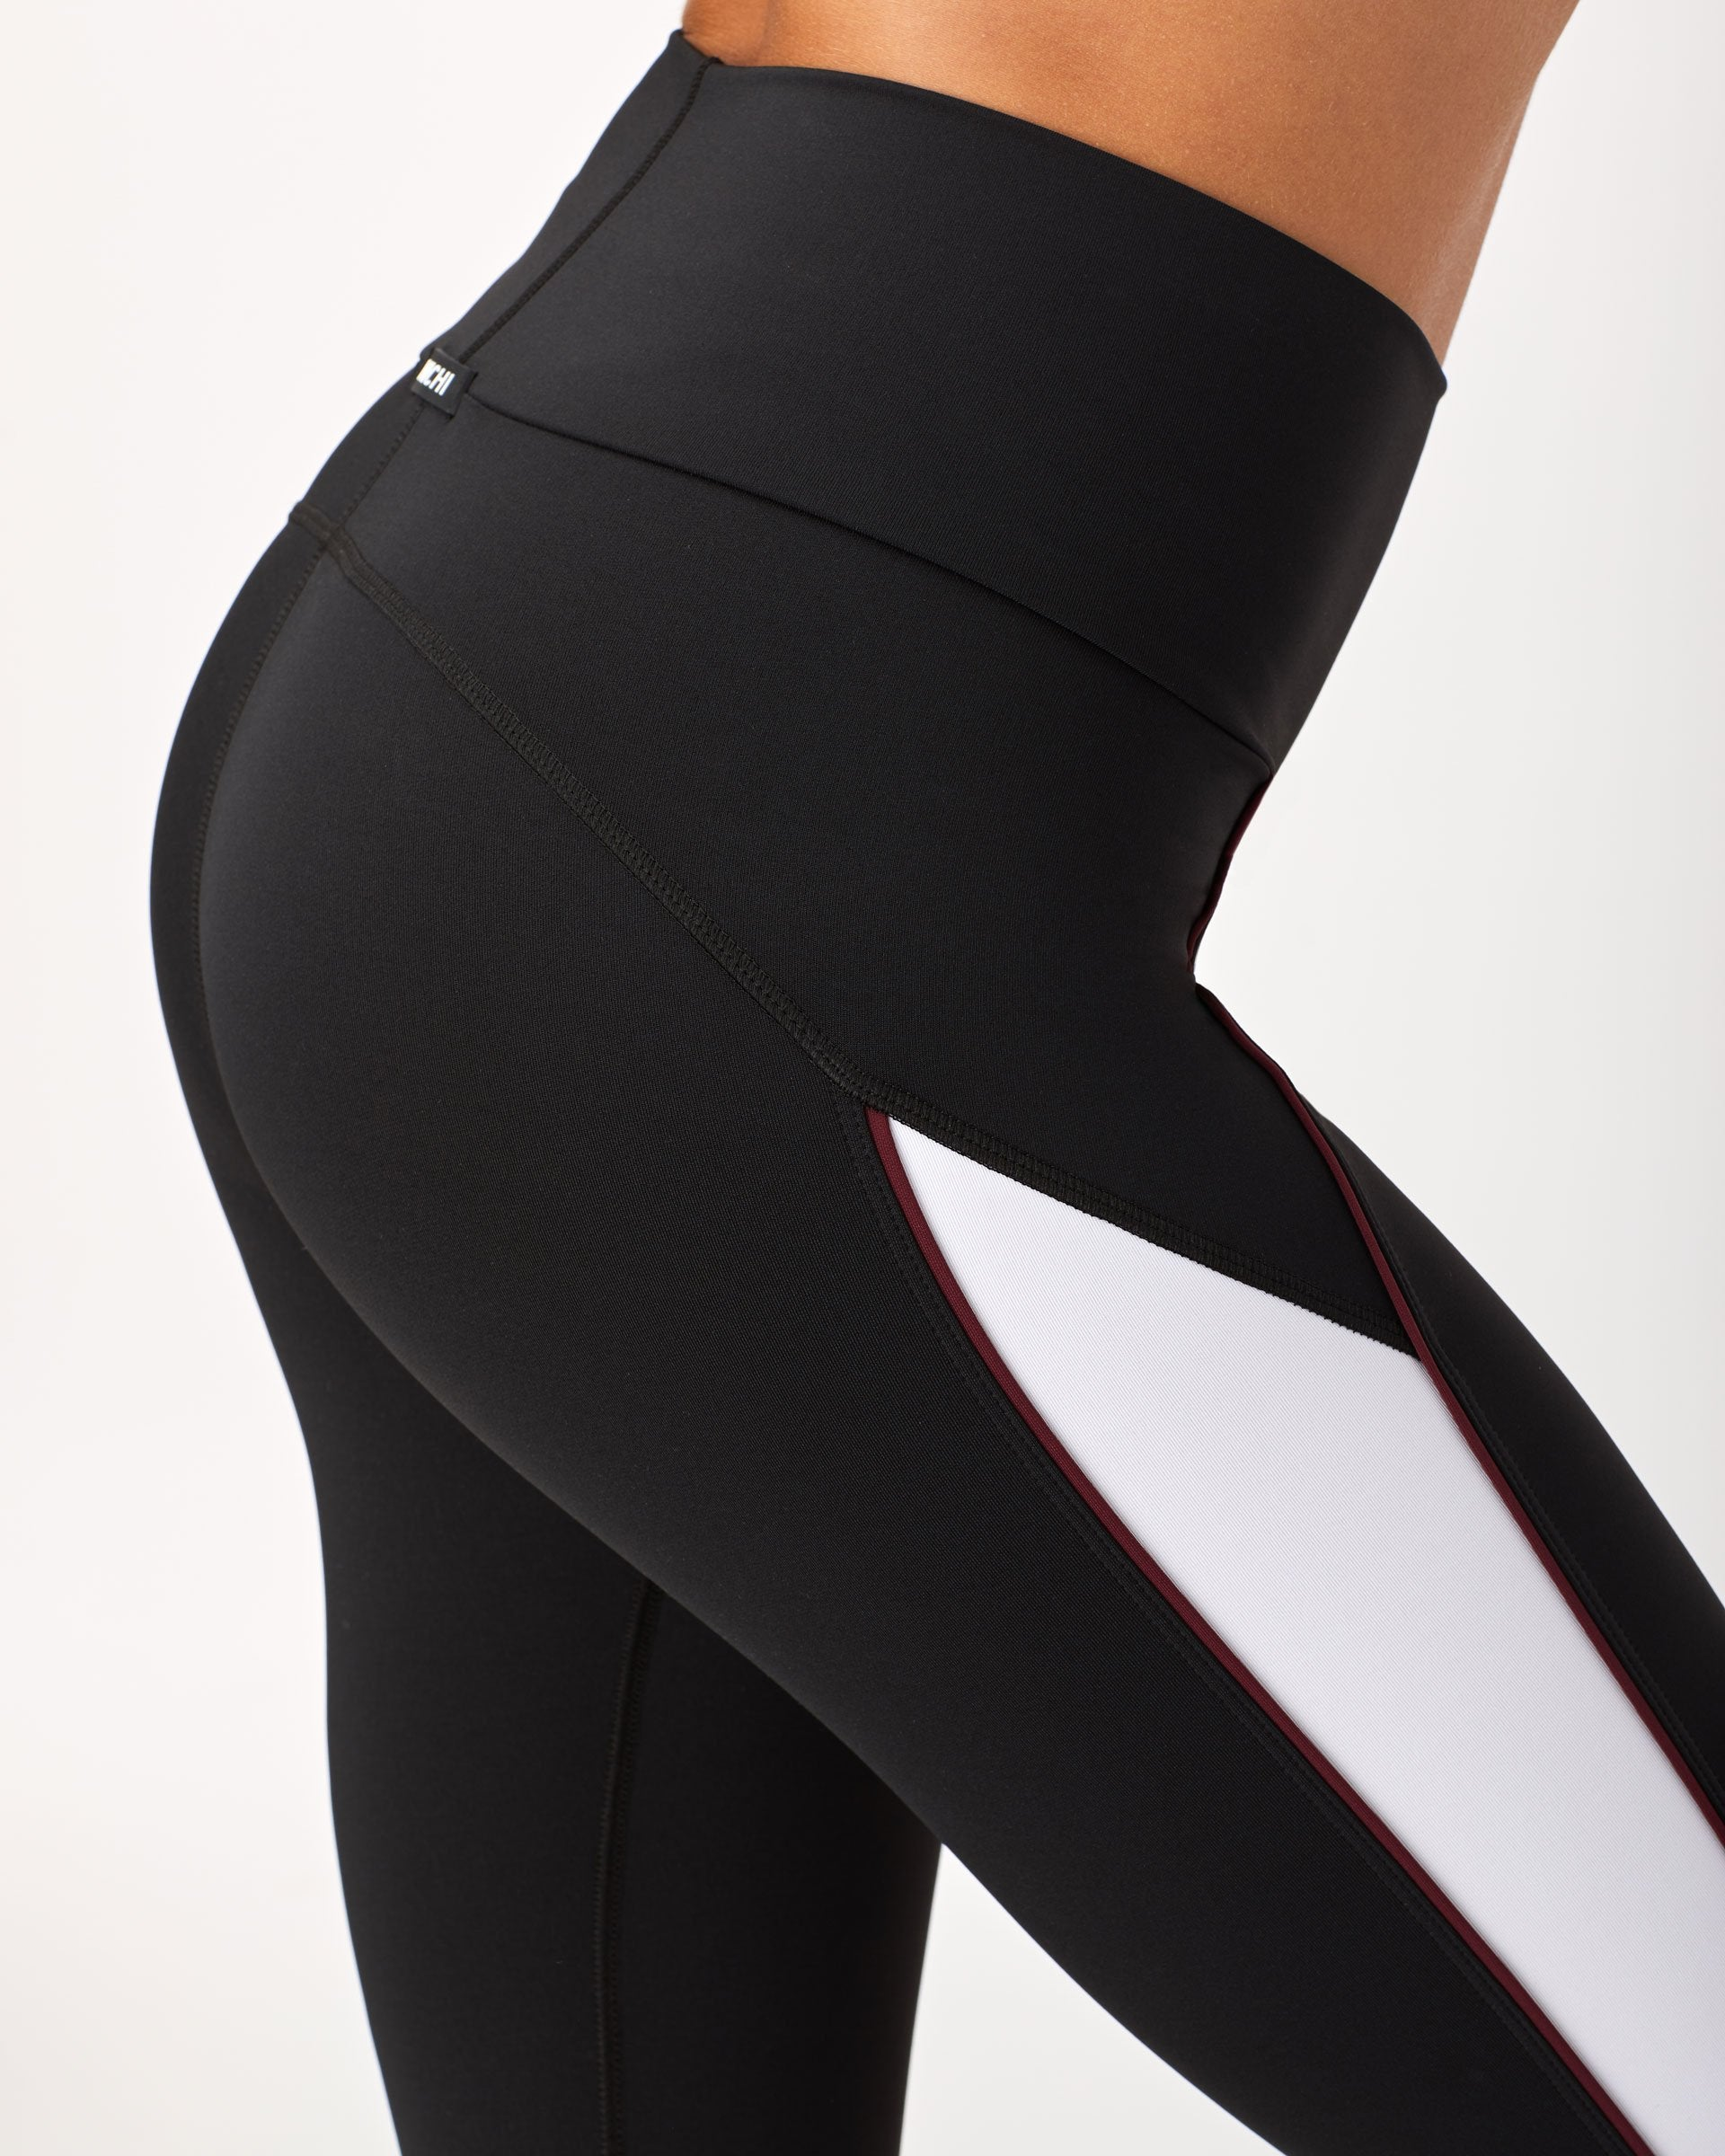 Channel High Waisted Crop Legging - Black/White/Wine